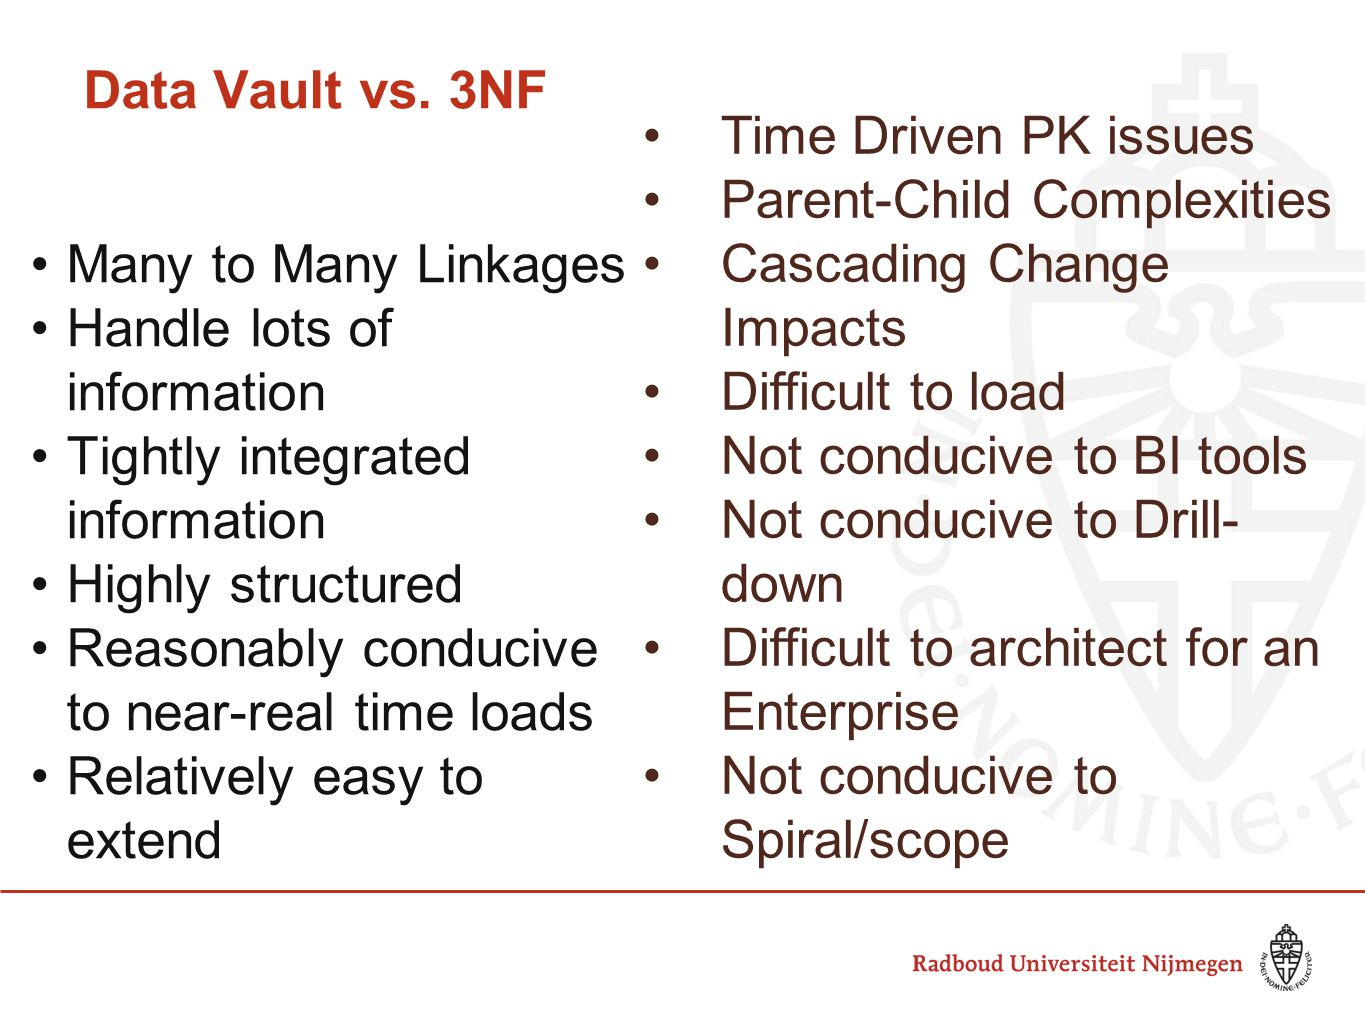 Data Vault vs. 3NF Time Driven PK issues. Parent-Child Complexities. Cascading Change Impacts. Difficult to load.